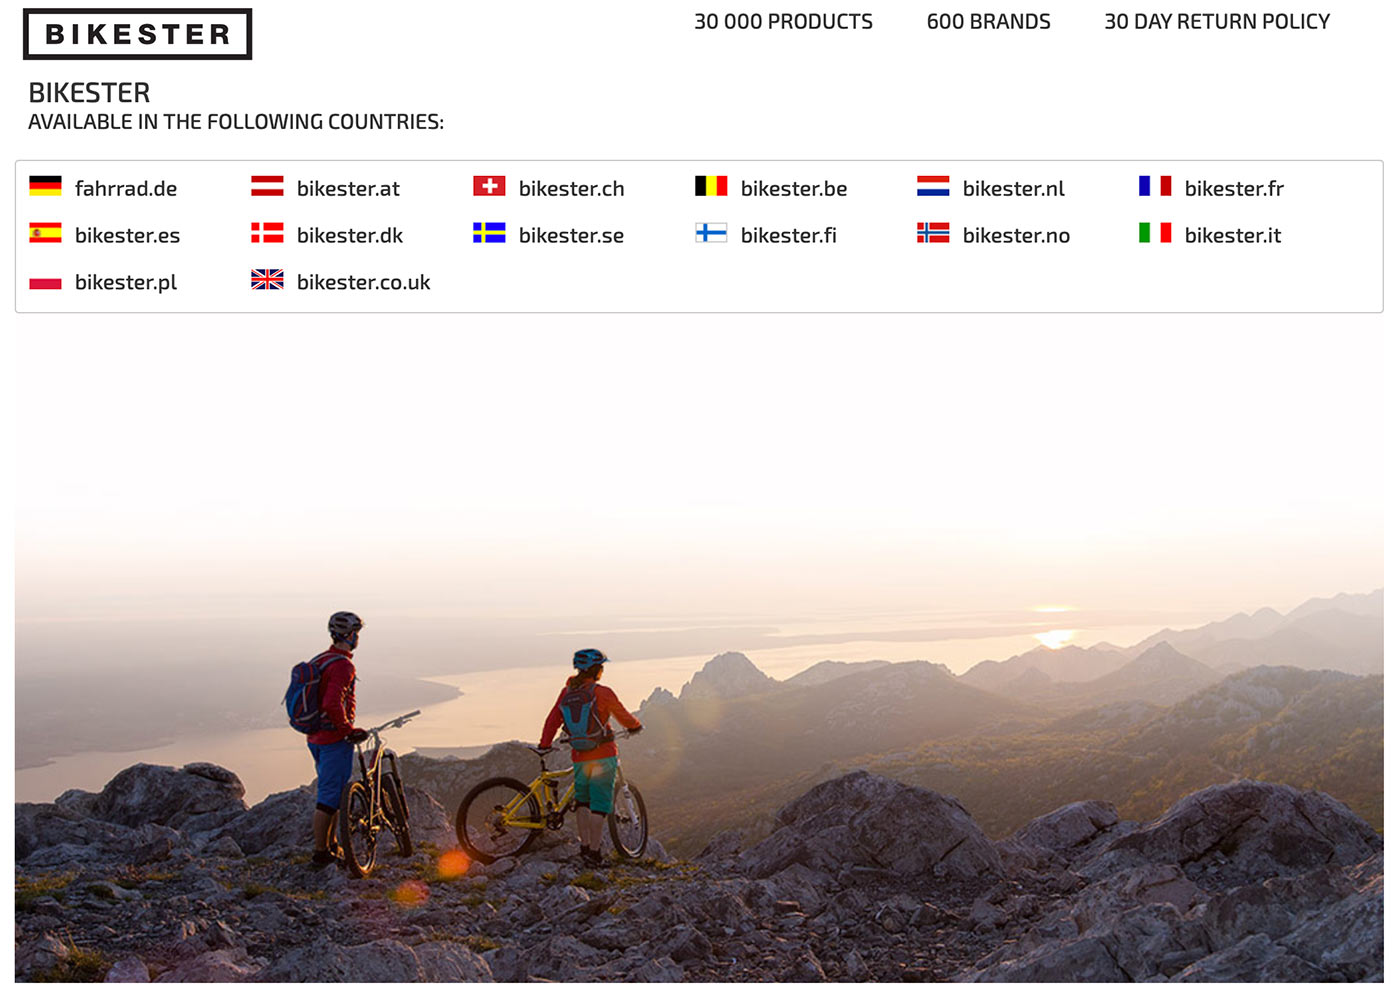 bikester homepage screenshot and country selection